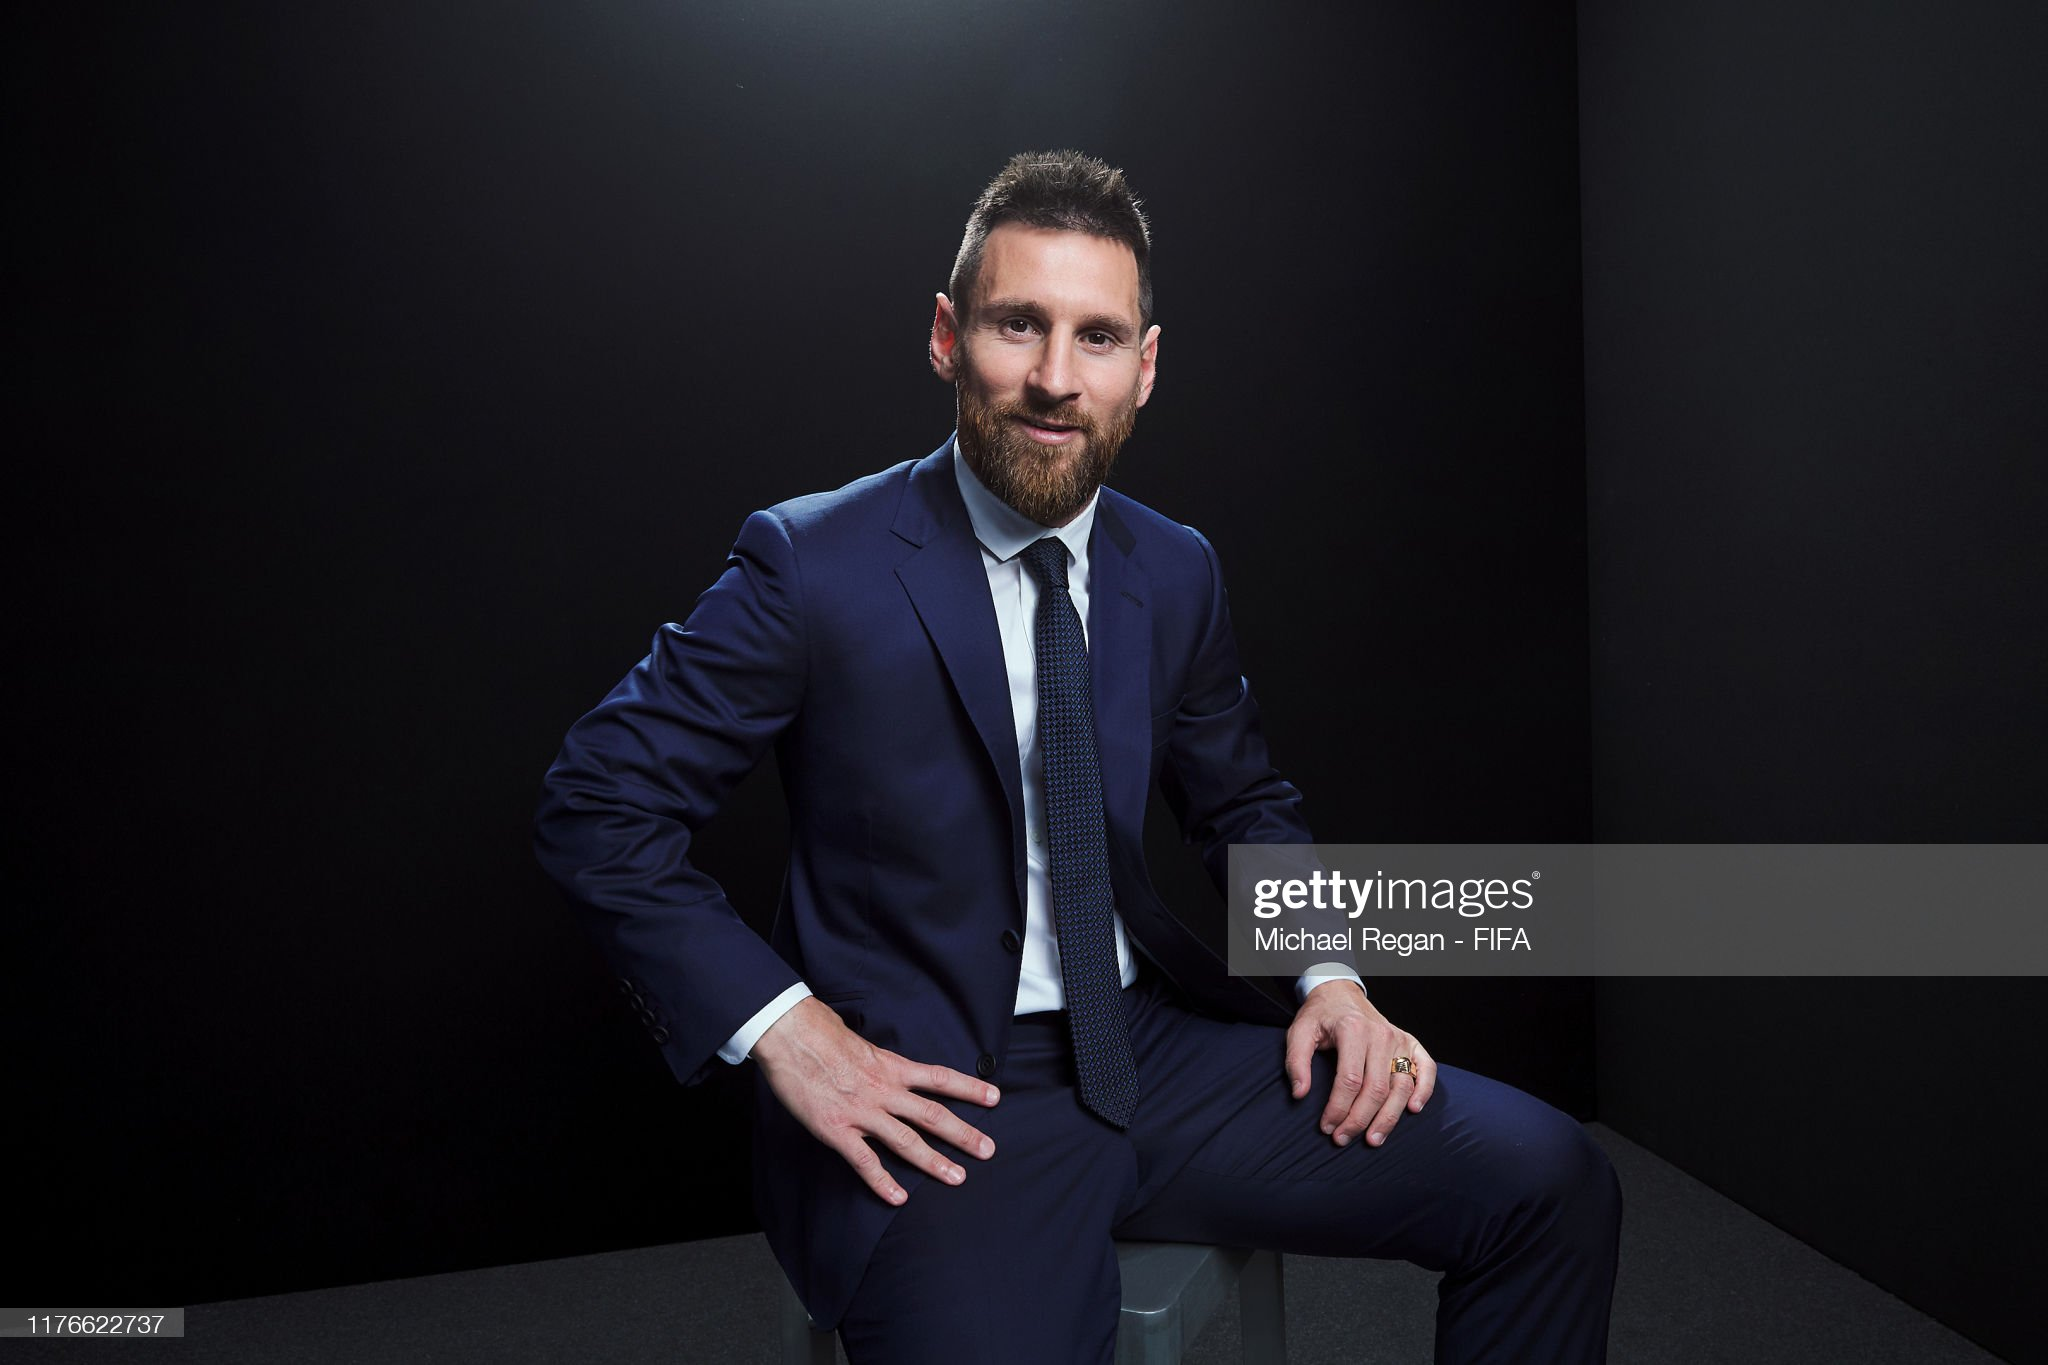 The Best FIFA Football Awards 2019 The-best-fifa-mens-player-award-finalist-lionel-messi-of-fc-barcelona-picture-id1176622737?s=2048x2048